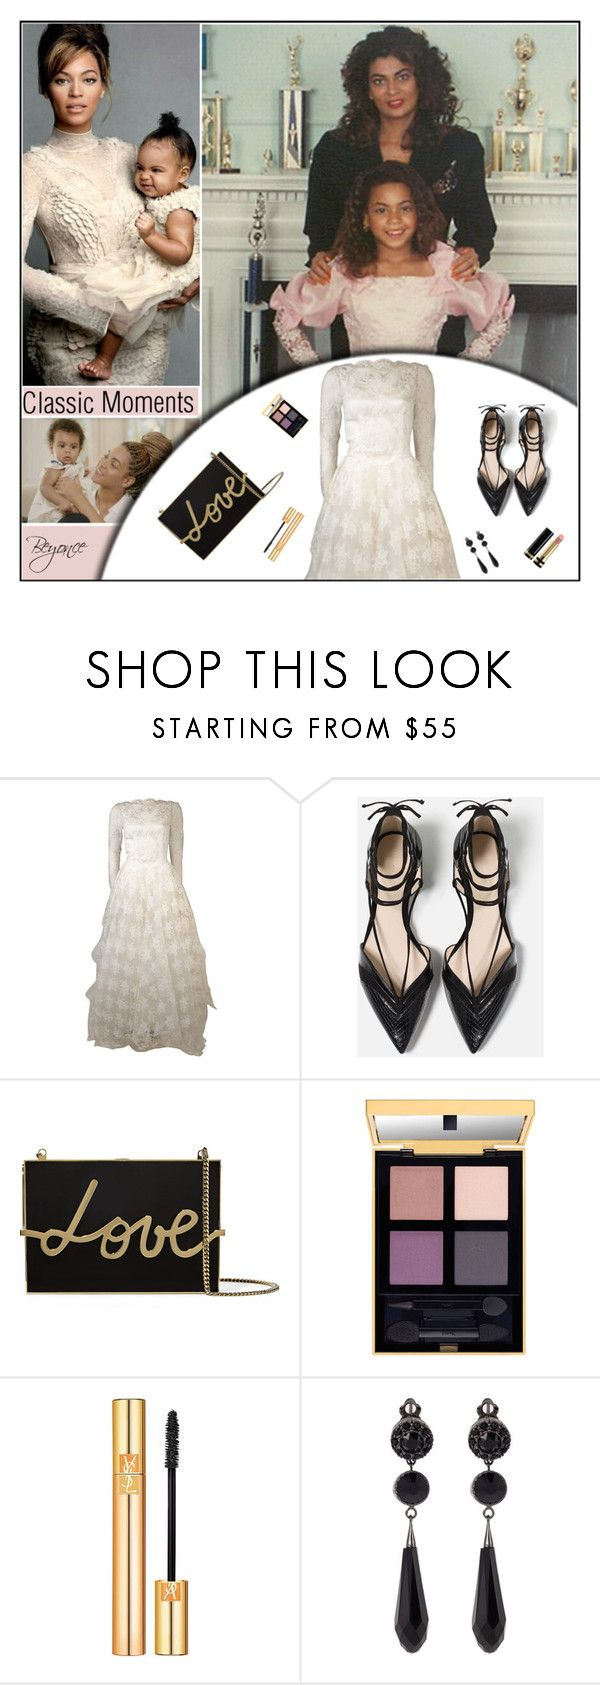 """""""Classic Moments/ Beyonce..."""" by melindairenes ❤ liked on Polyvore featuring Zara, Lanvin, Yves Saint Laurent, Givenchy, Gucci, USA, classicmoments, thanksamillion, thanksmylovelies and Sorryforthelatereply"""